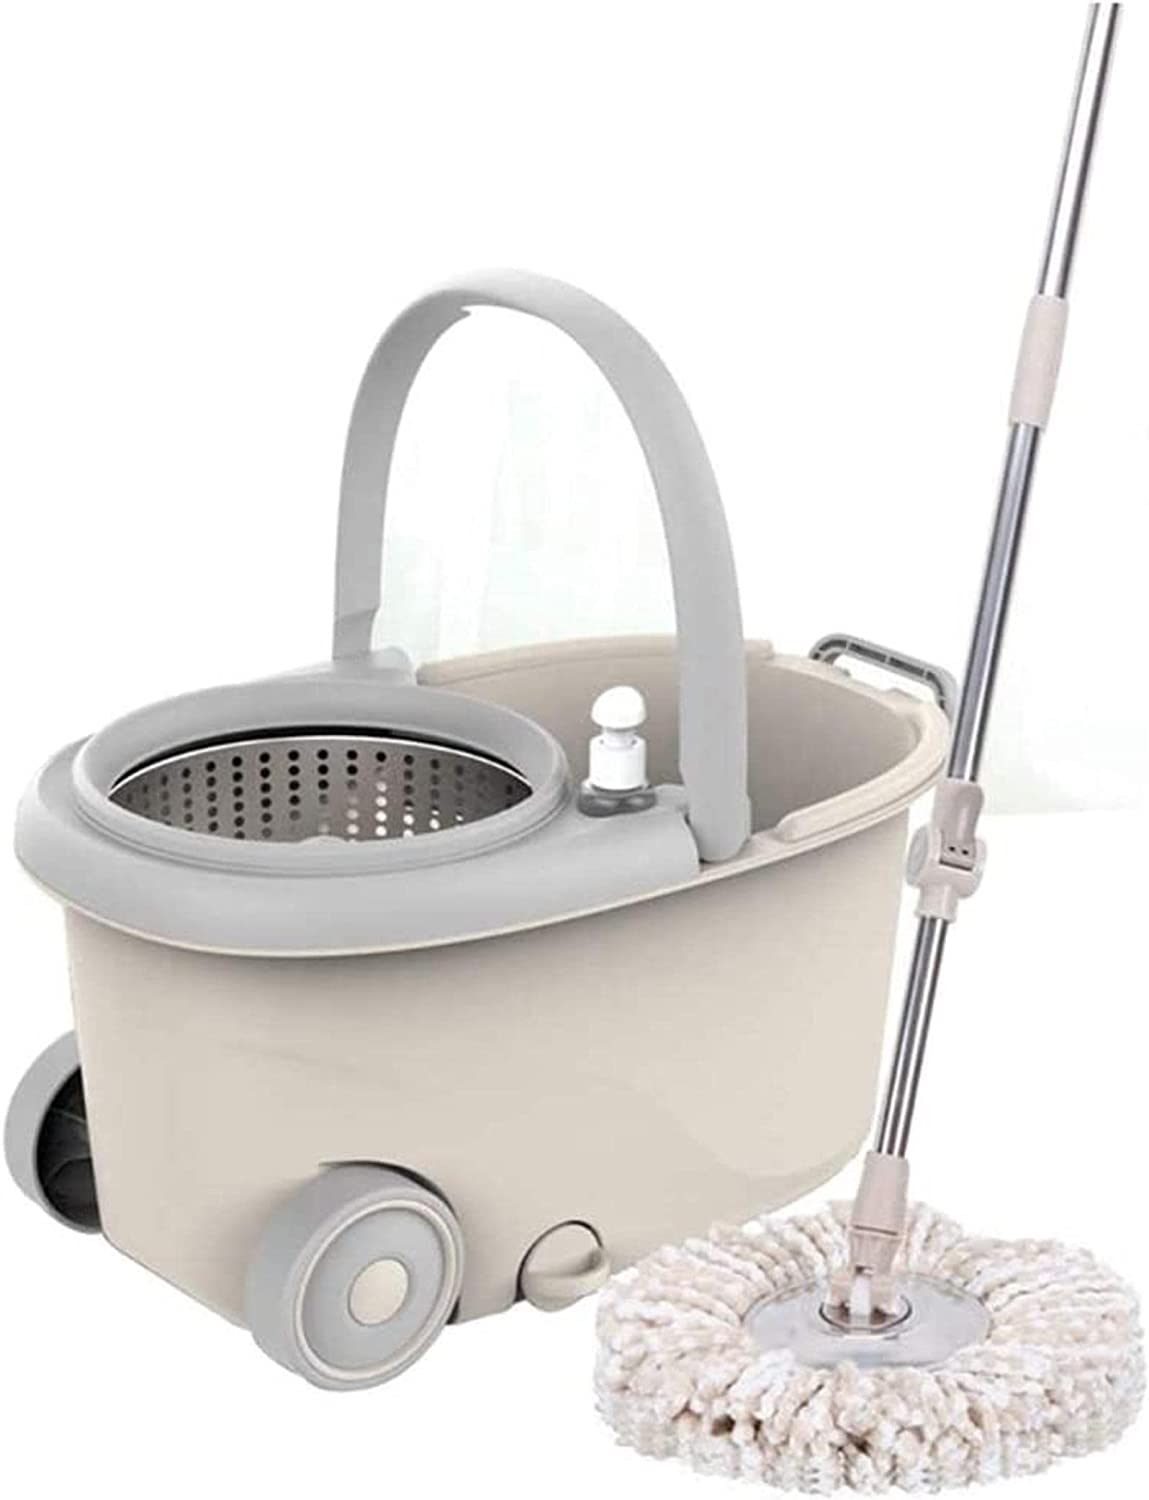 shipfree Gifts ZXCVBNN Rotary Mop with Bucket Household Wood Hands-Free Washing